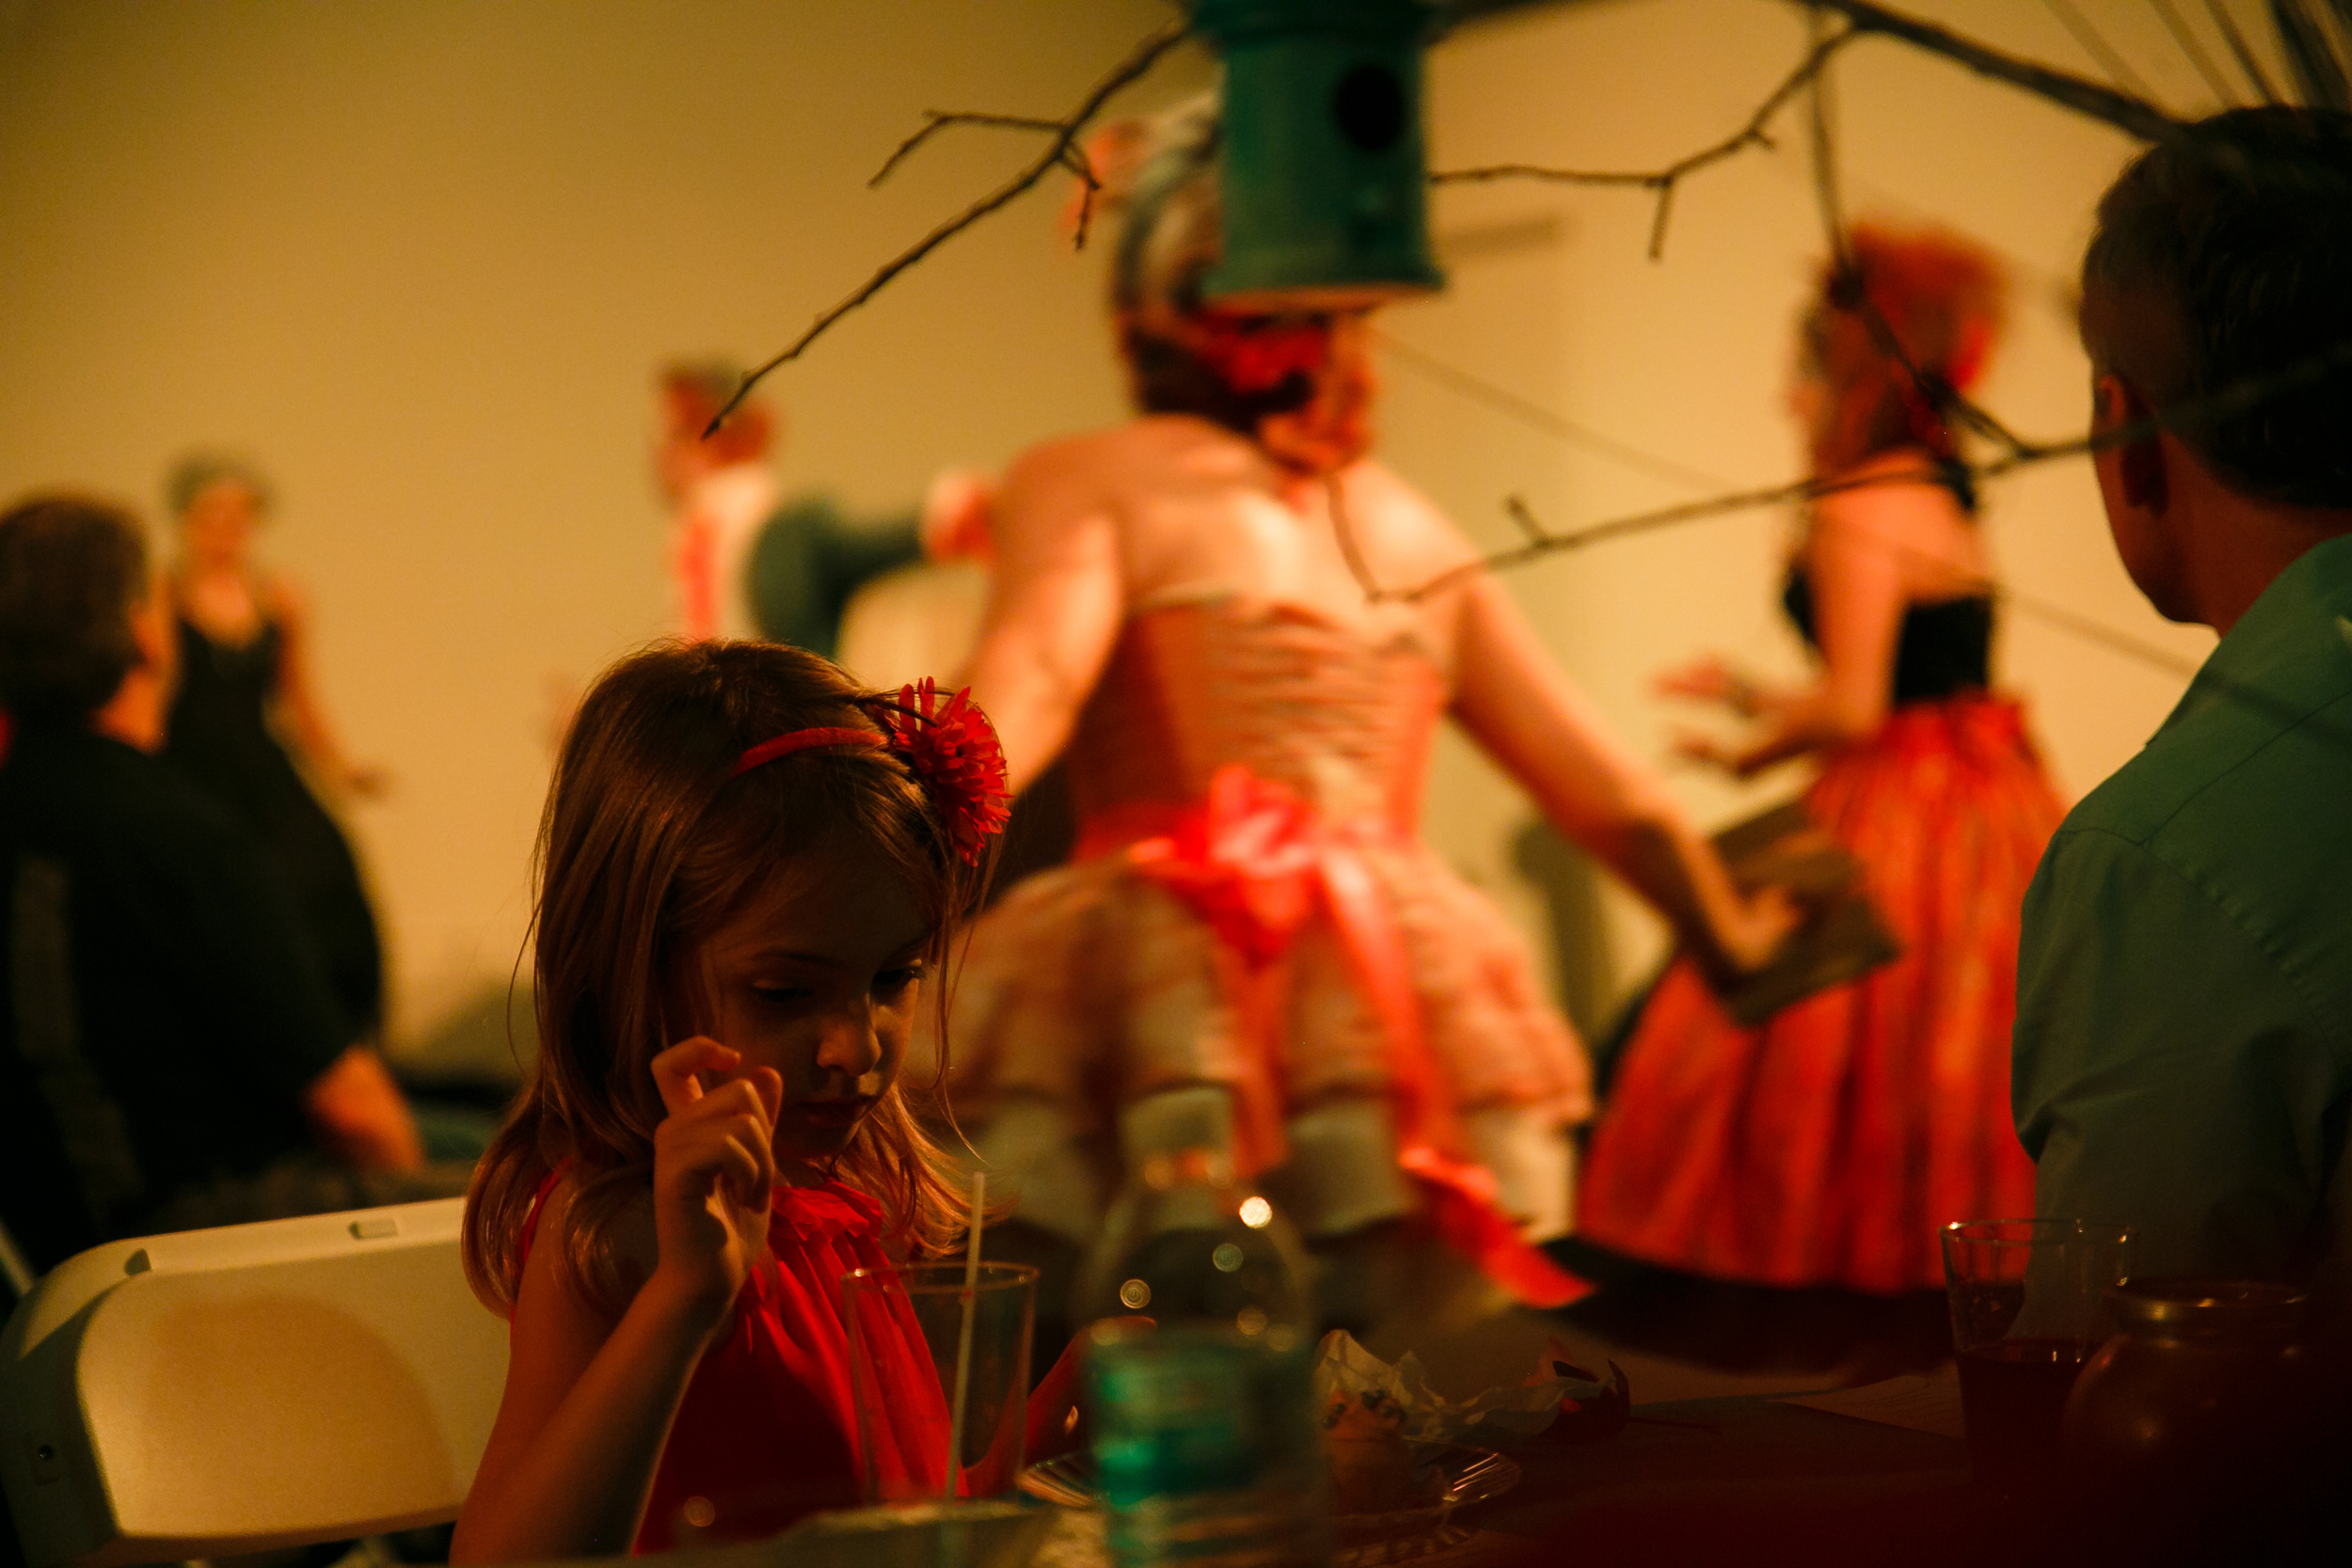 Child watching dancers perform during theater performance in Austin